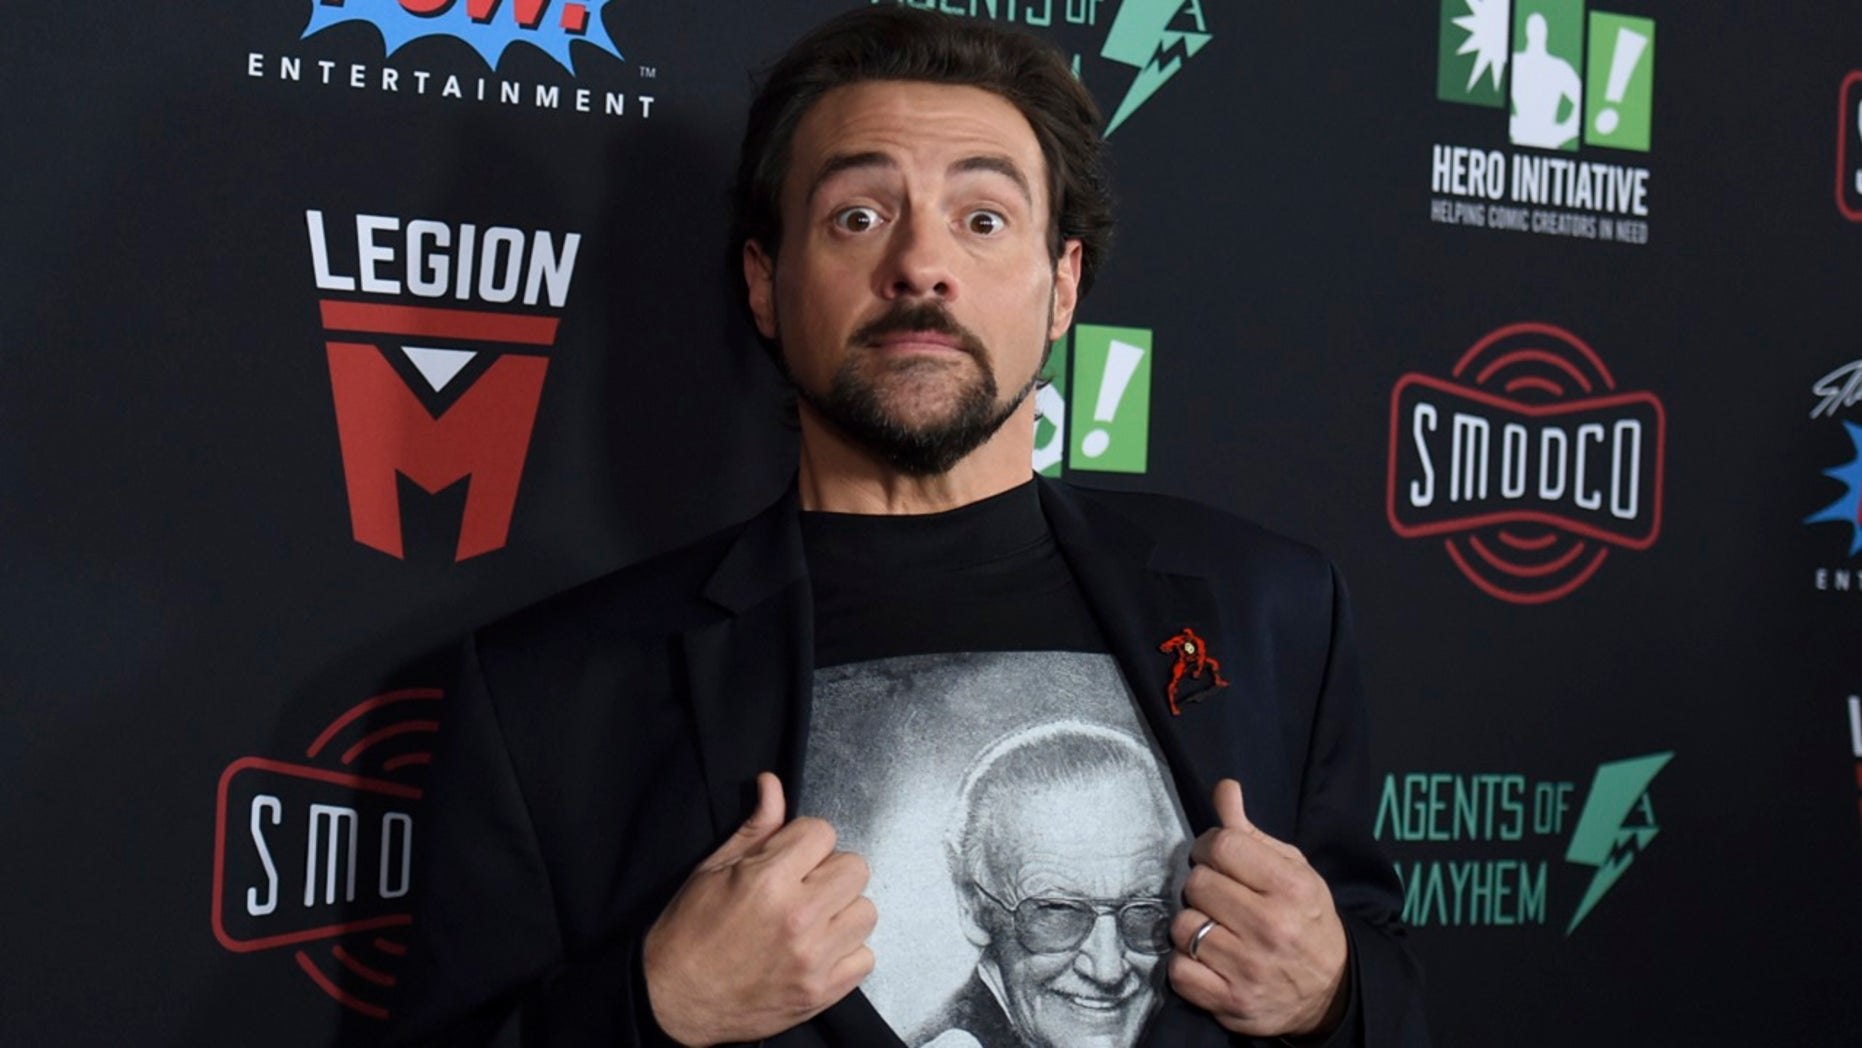 FILE: Kevin Smith arrives at Excelsior! A Celebration of the Amazing, Fantastic, Incredible & Uncanny Life of Stan Lee on Wednesday, Jan. 30, 2019, at the TCL Chinese Theatre in Los Angeles. (Invision via Associated Press)